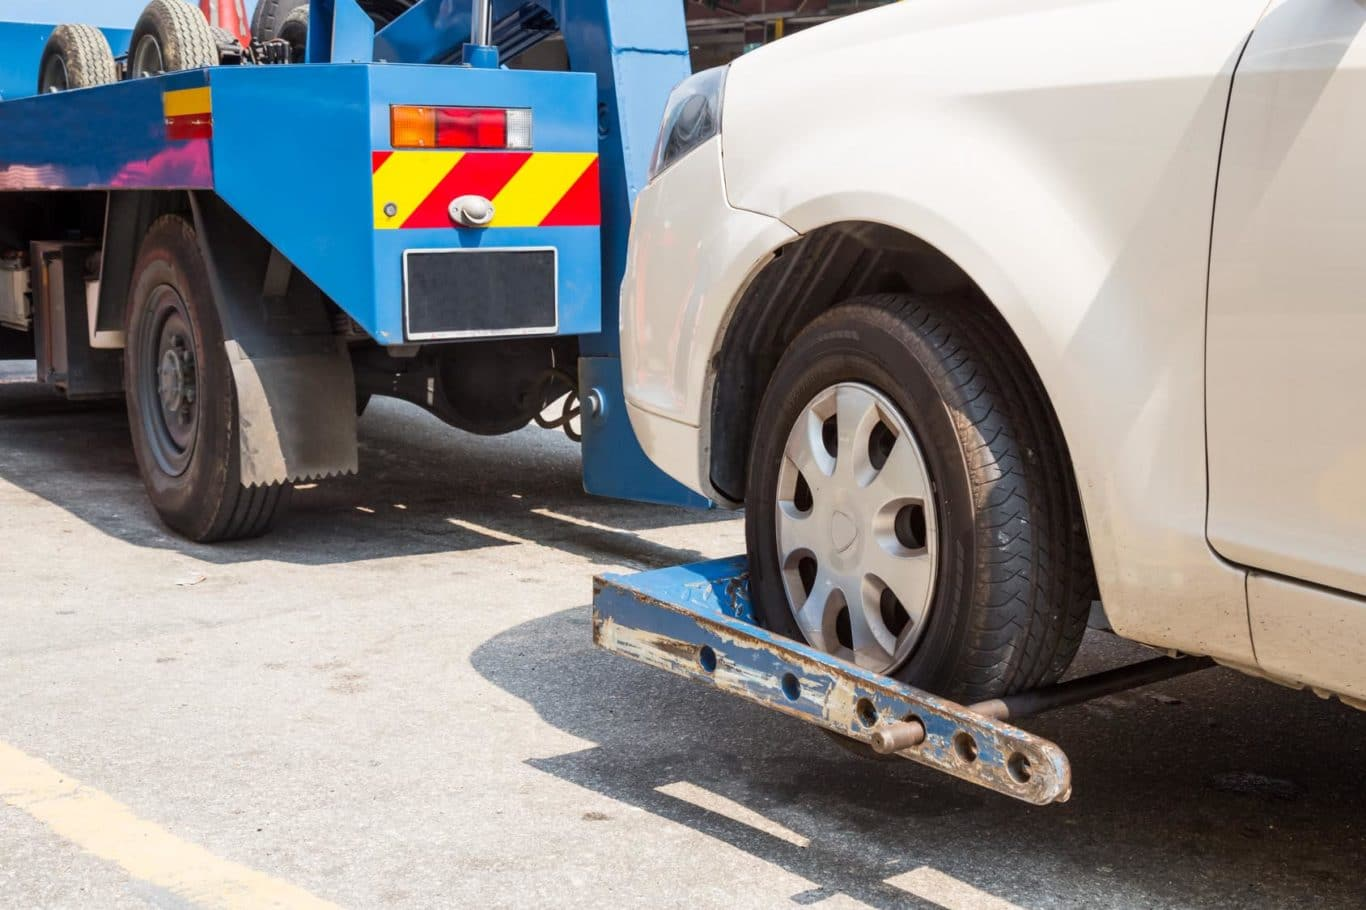 Beaumont expert Breakdown Recovery services